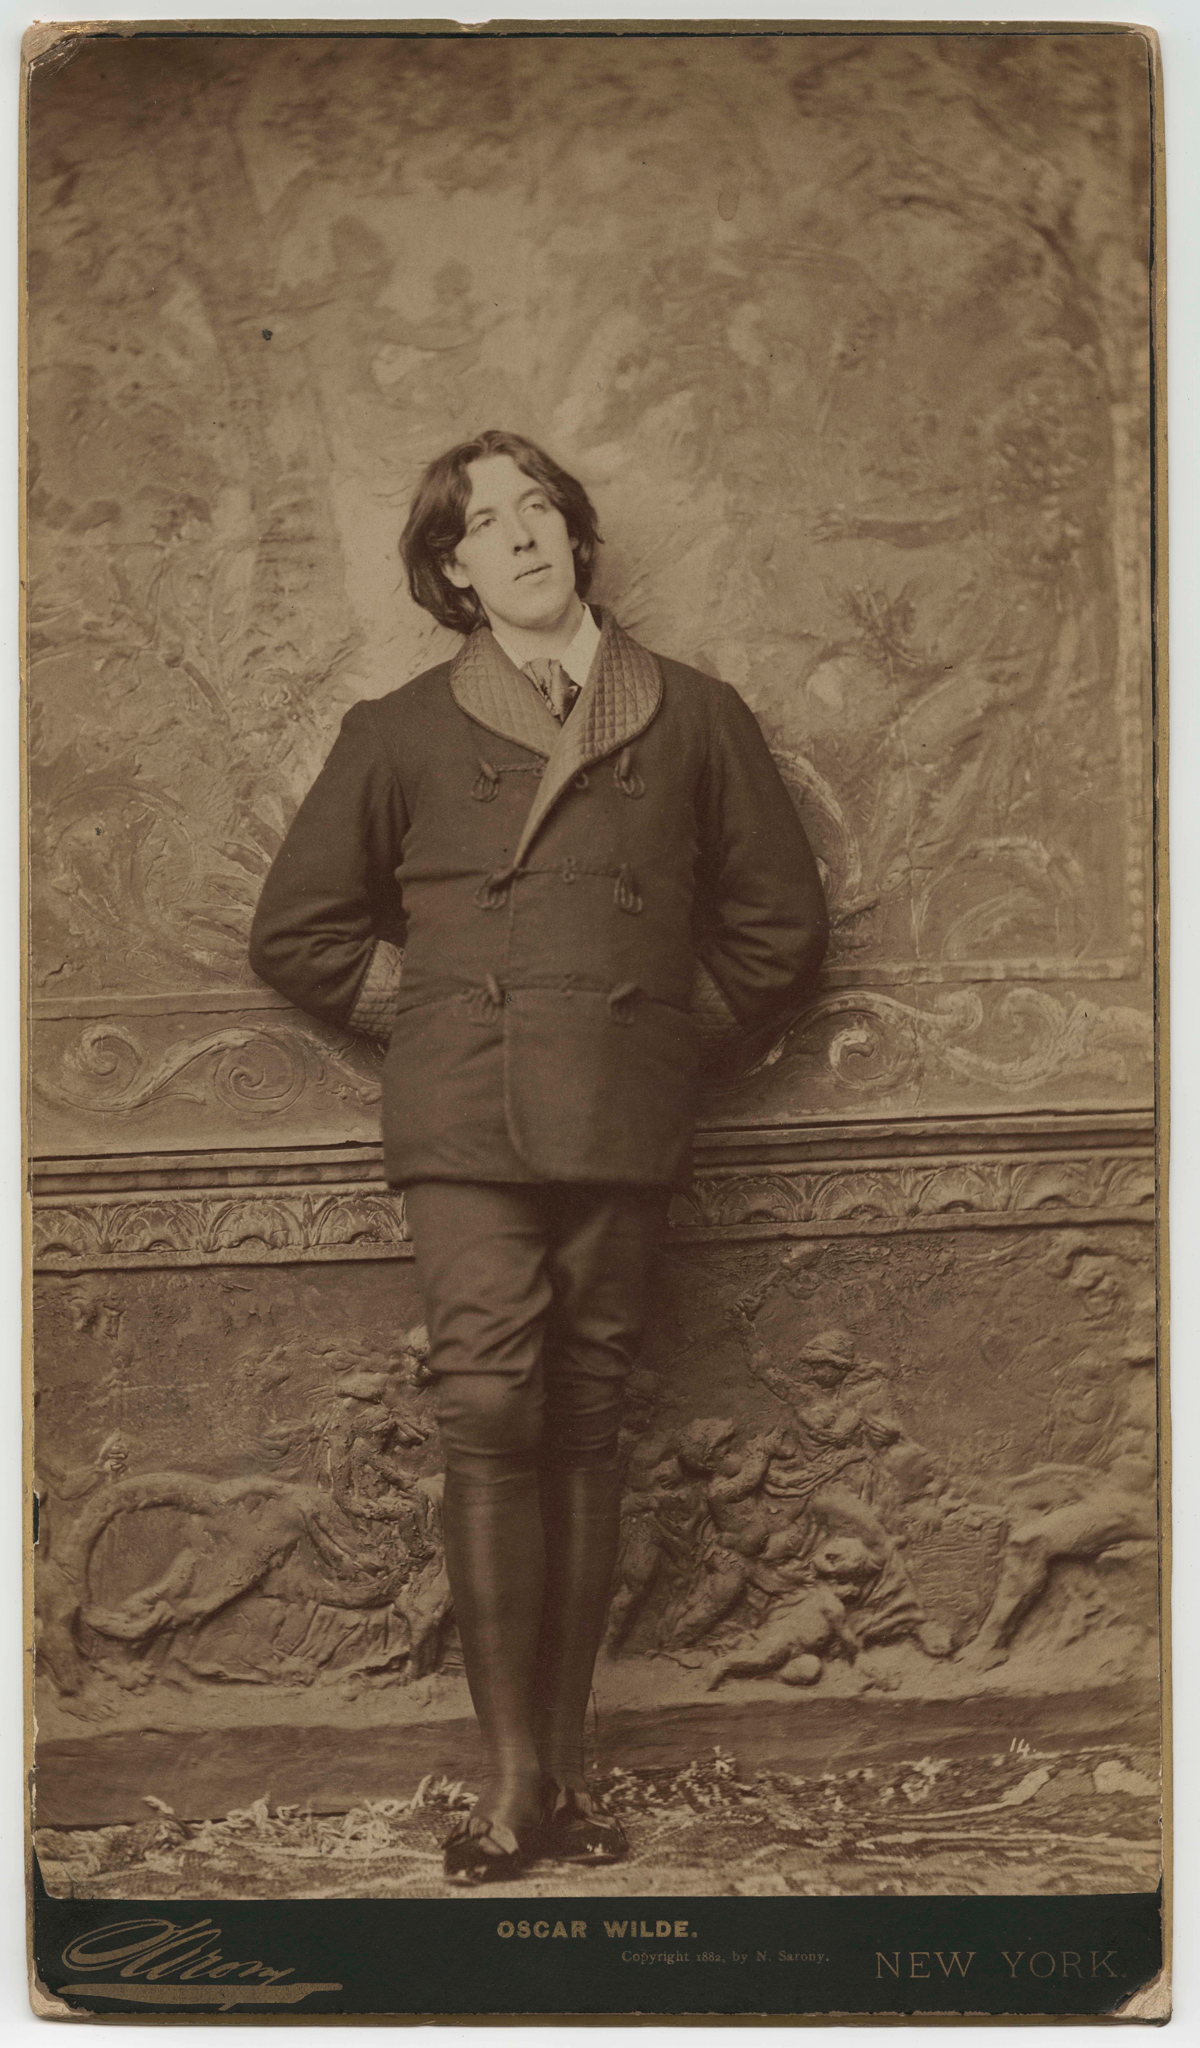 Discovery of books from the library of Oscar Wilde